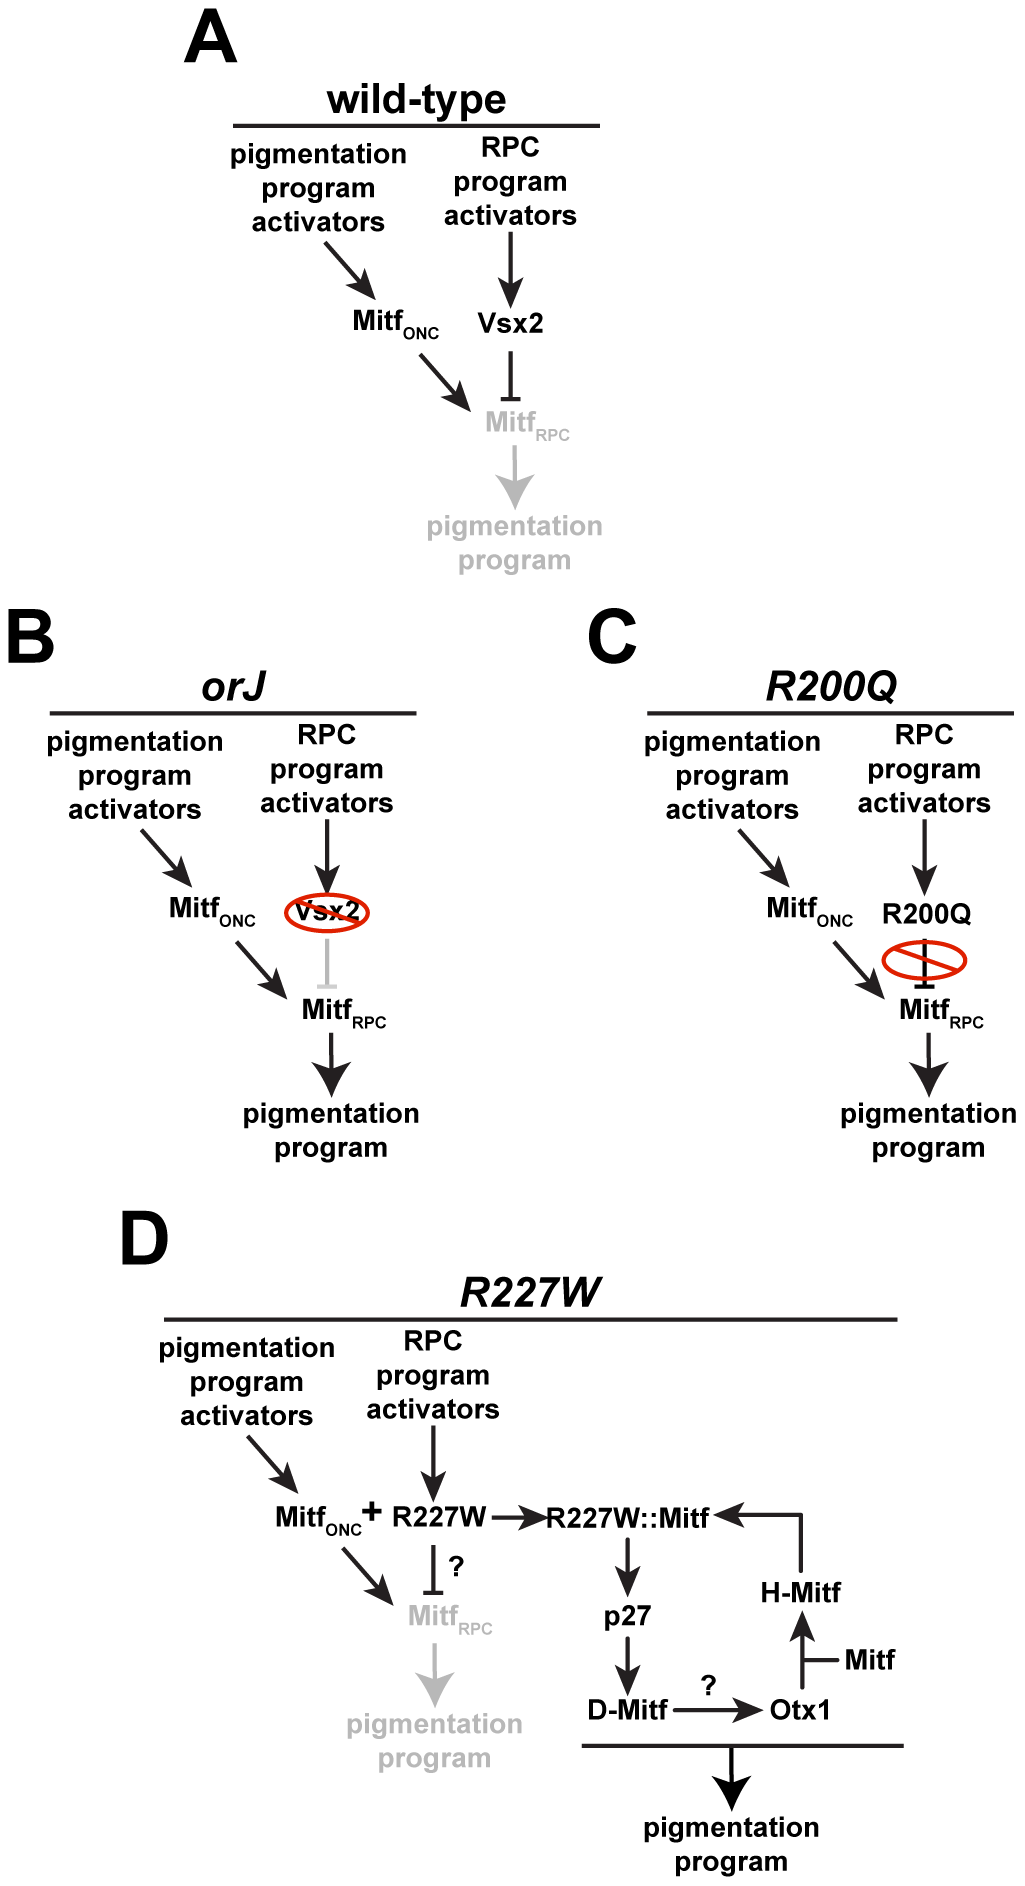 Regulation of pigmentation programs in wild-type and mutant RPCs.